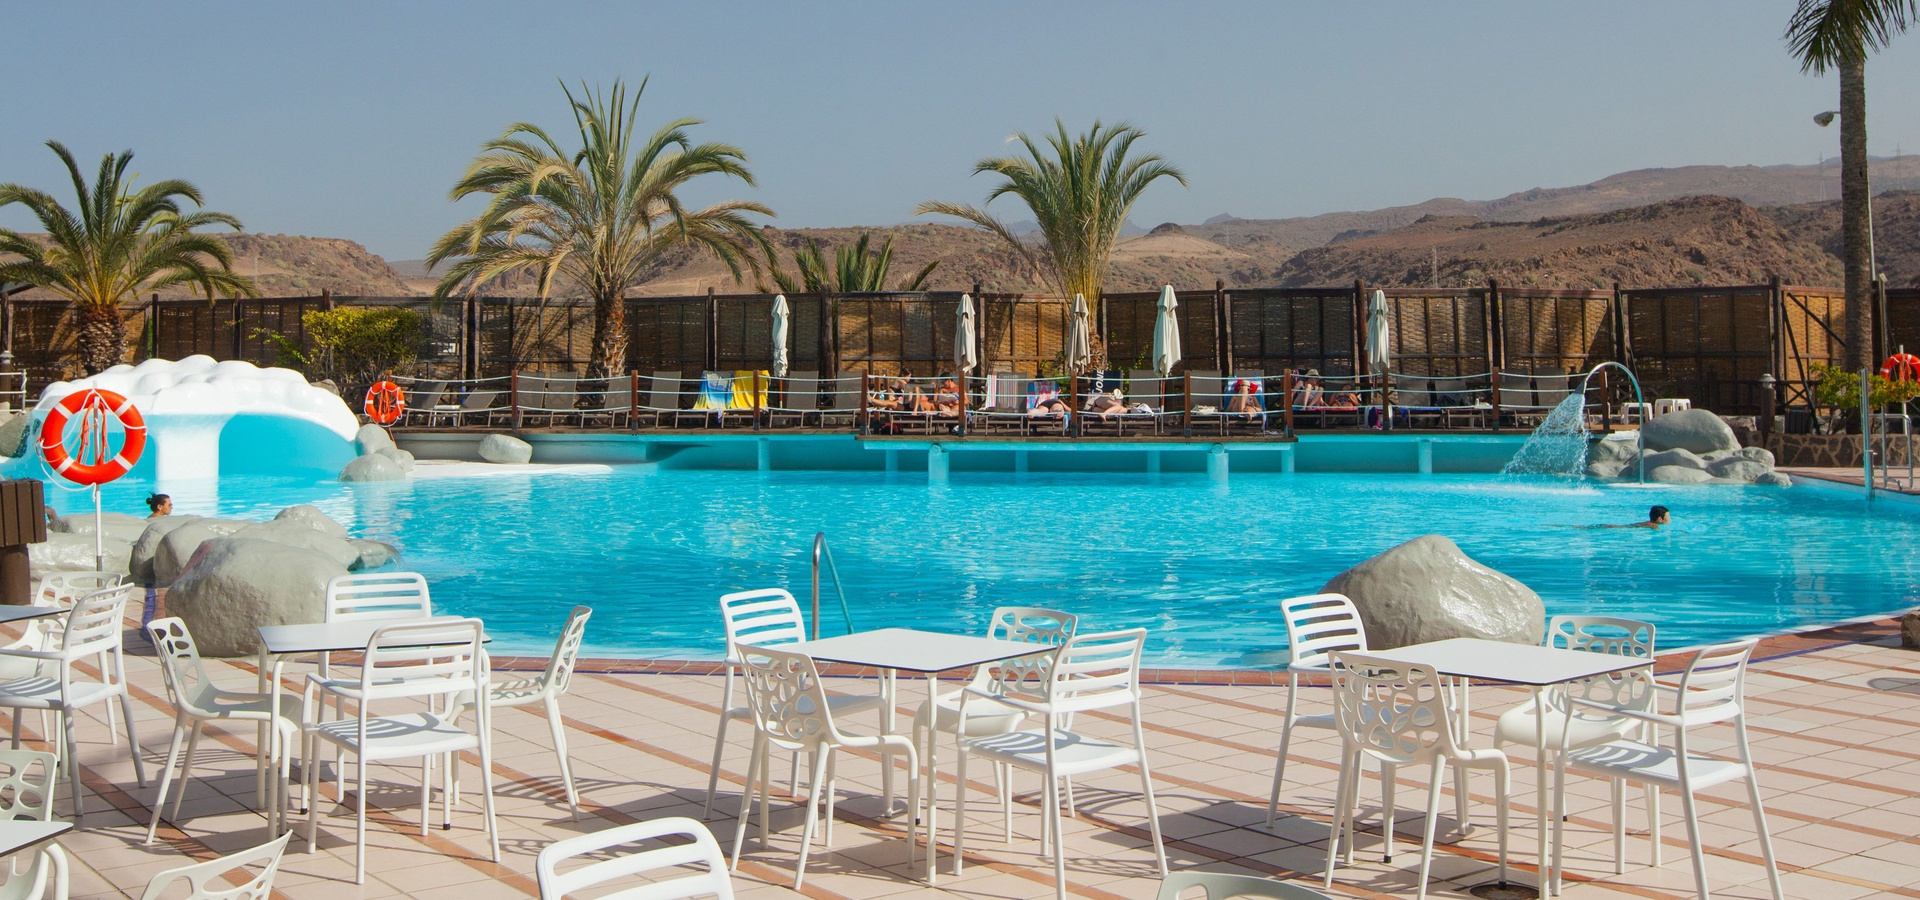 Enjoy your holiday! - Abora Continental by Lopesan Hotels - Gran Canaria